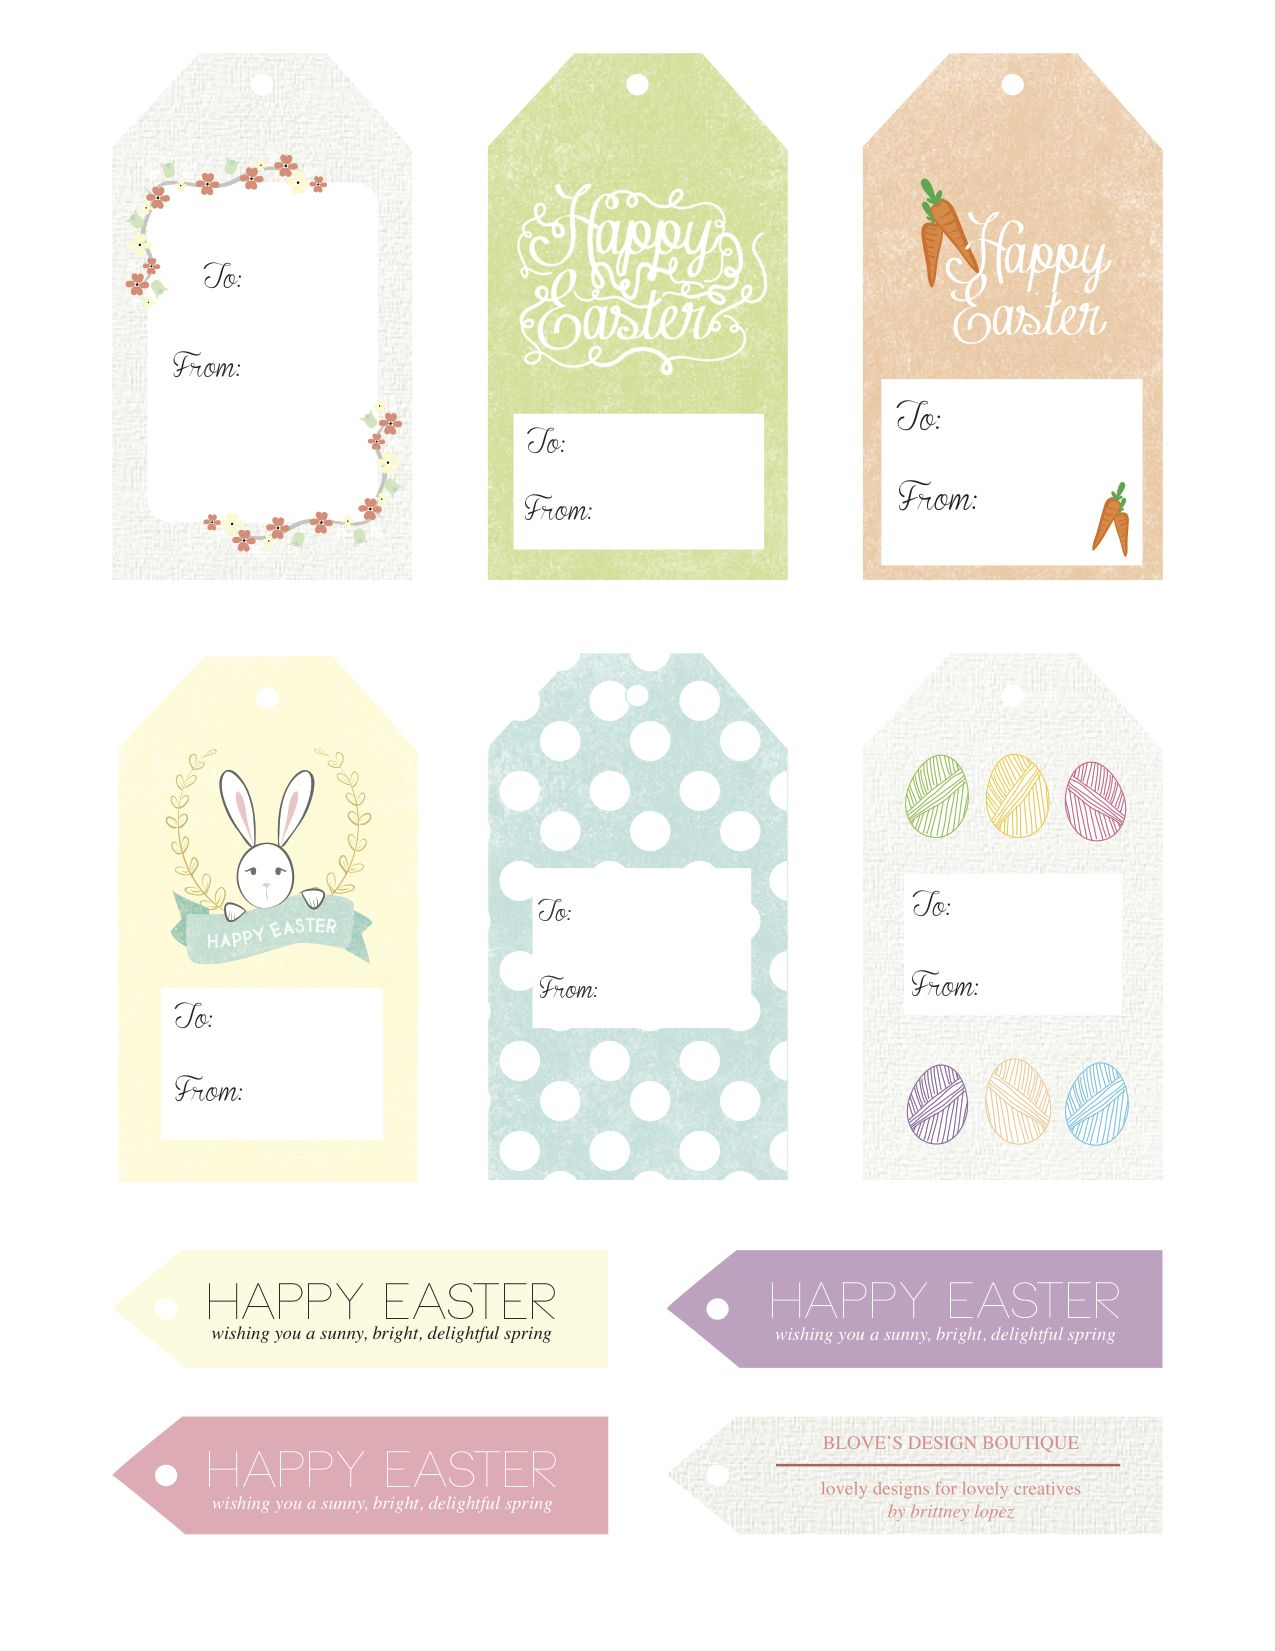 Free easter printables adorable gift tags diy pinterest free easter printables adorable gift tags negle Choice Image